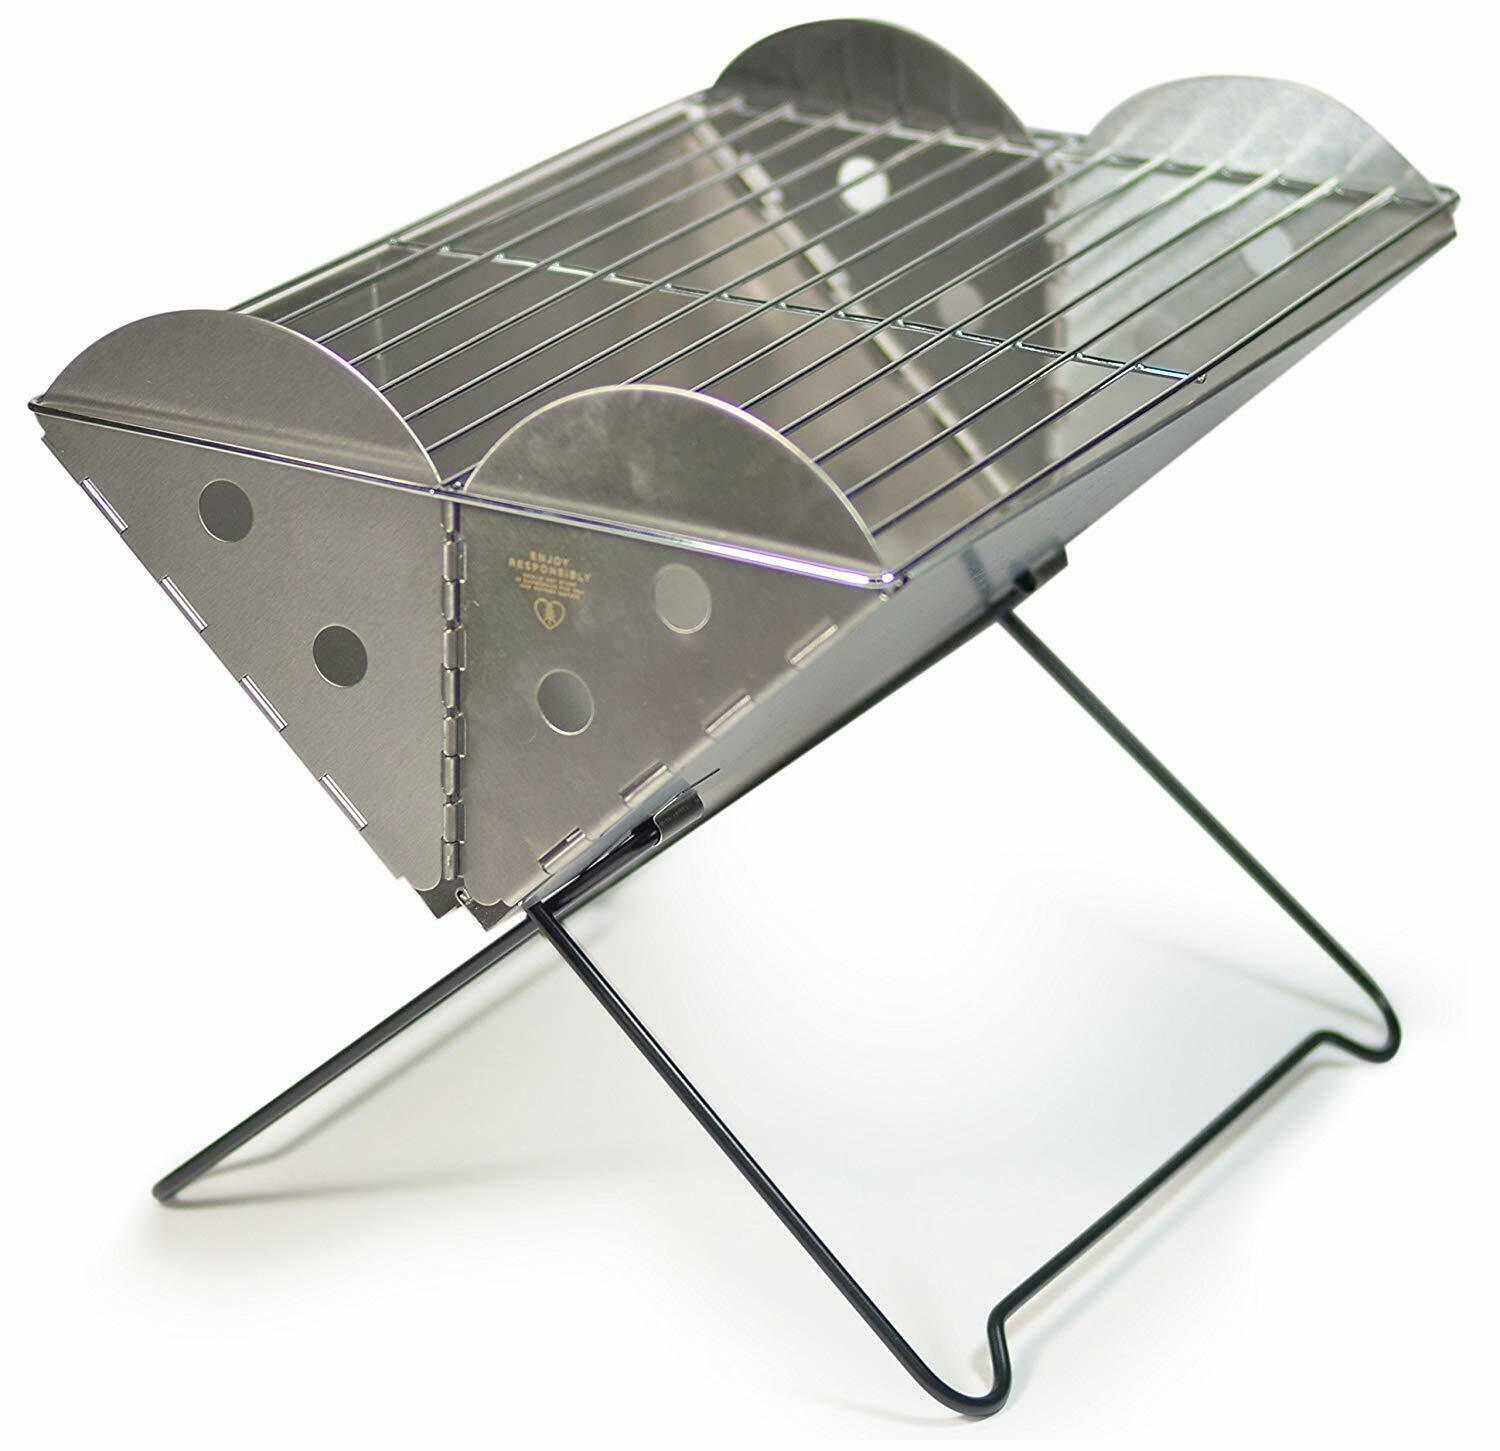 UCO Flatpack Portable Grill and Fire Pit - 5  Thick 13 x10  Regular